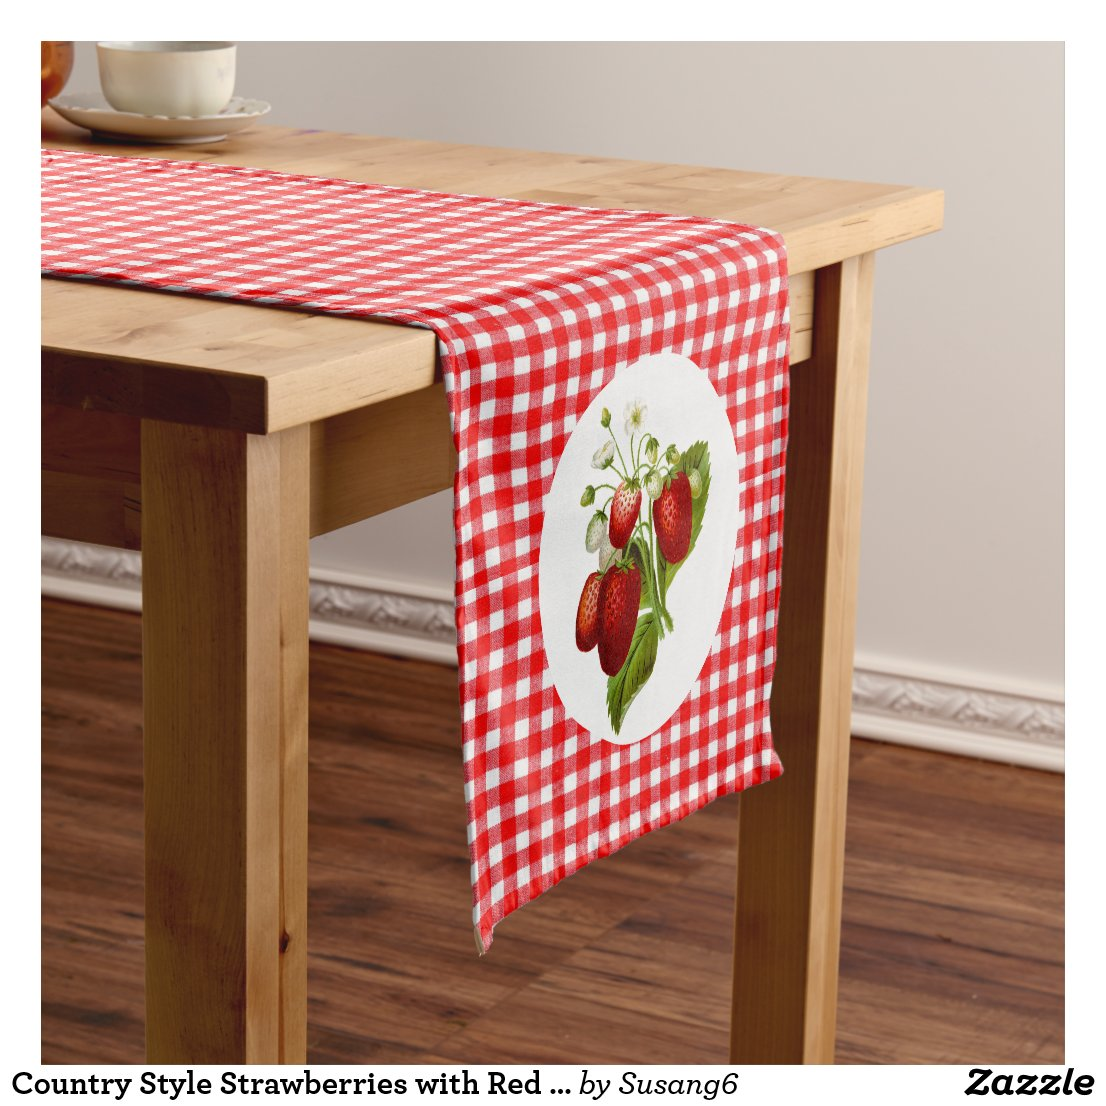 Country Style Strawberries with Red Gingham Short Table Runner